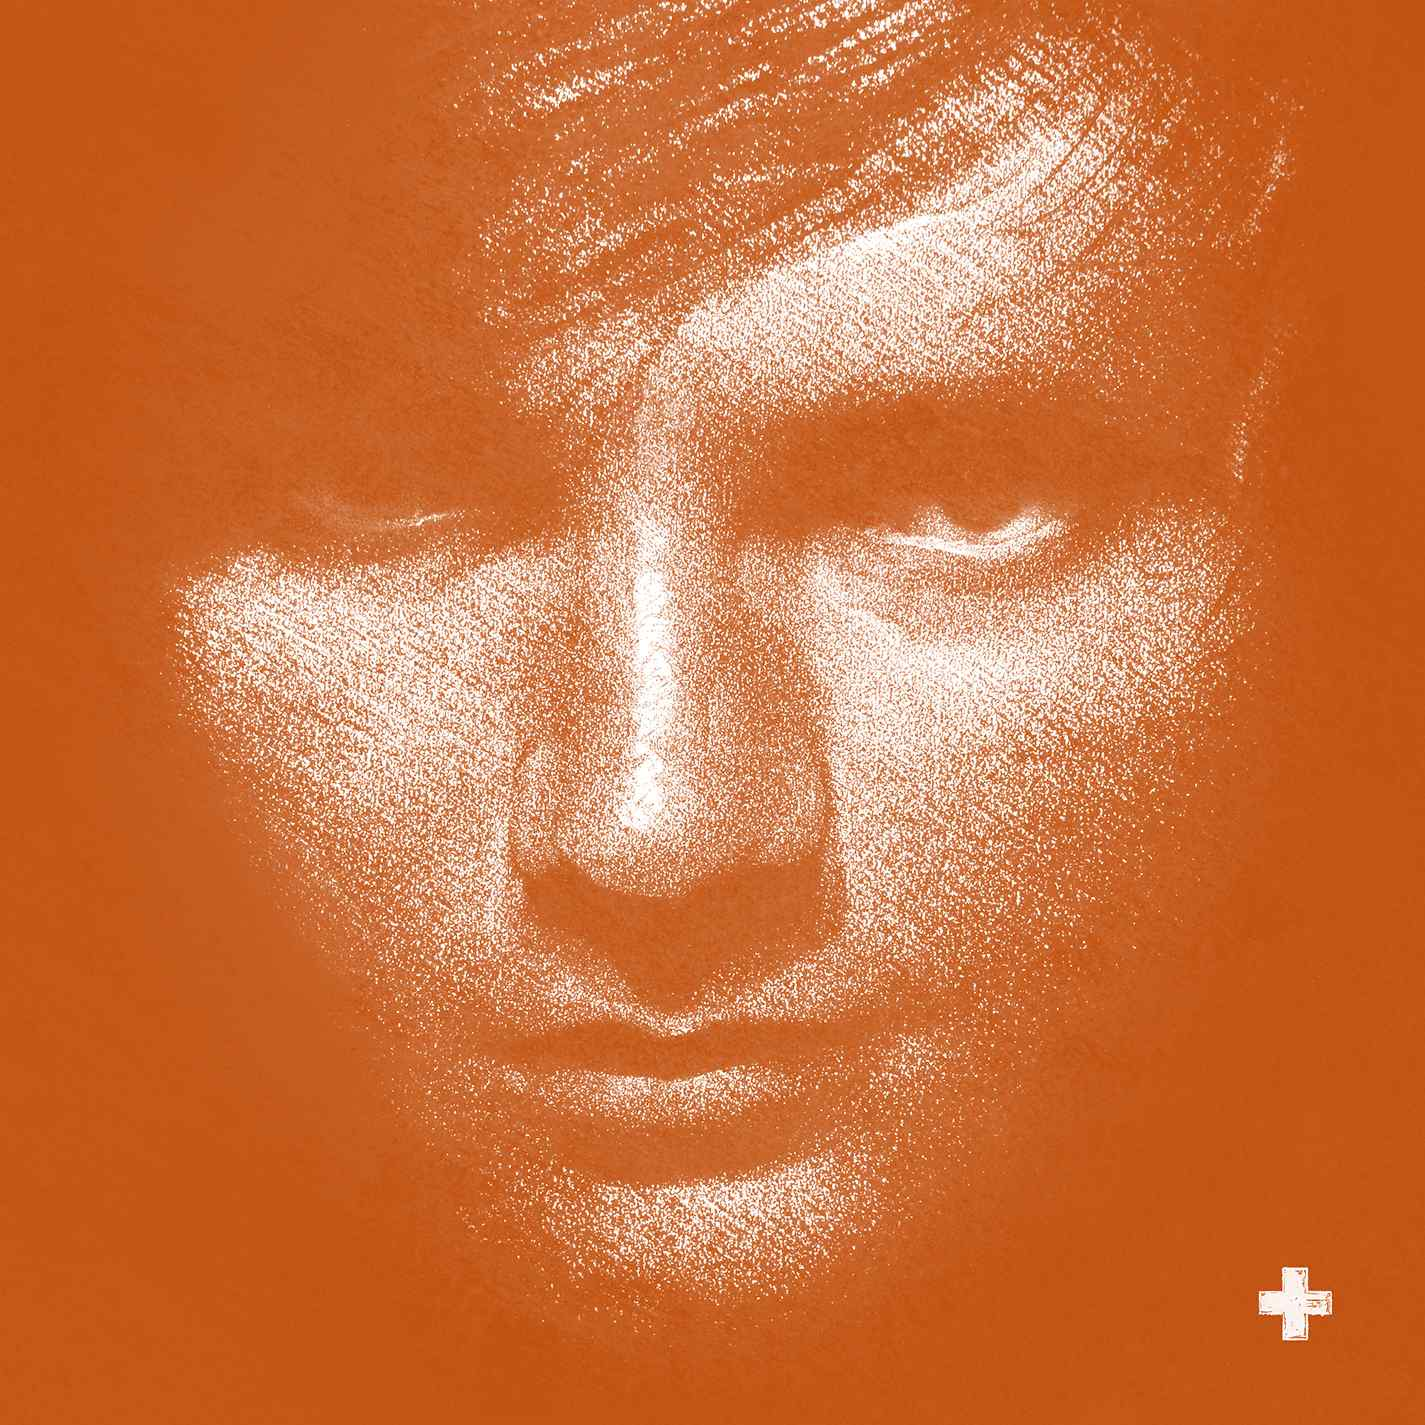 ed-sheeran-album-cover.jpg